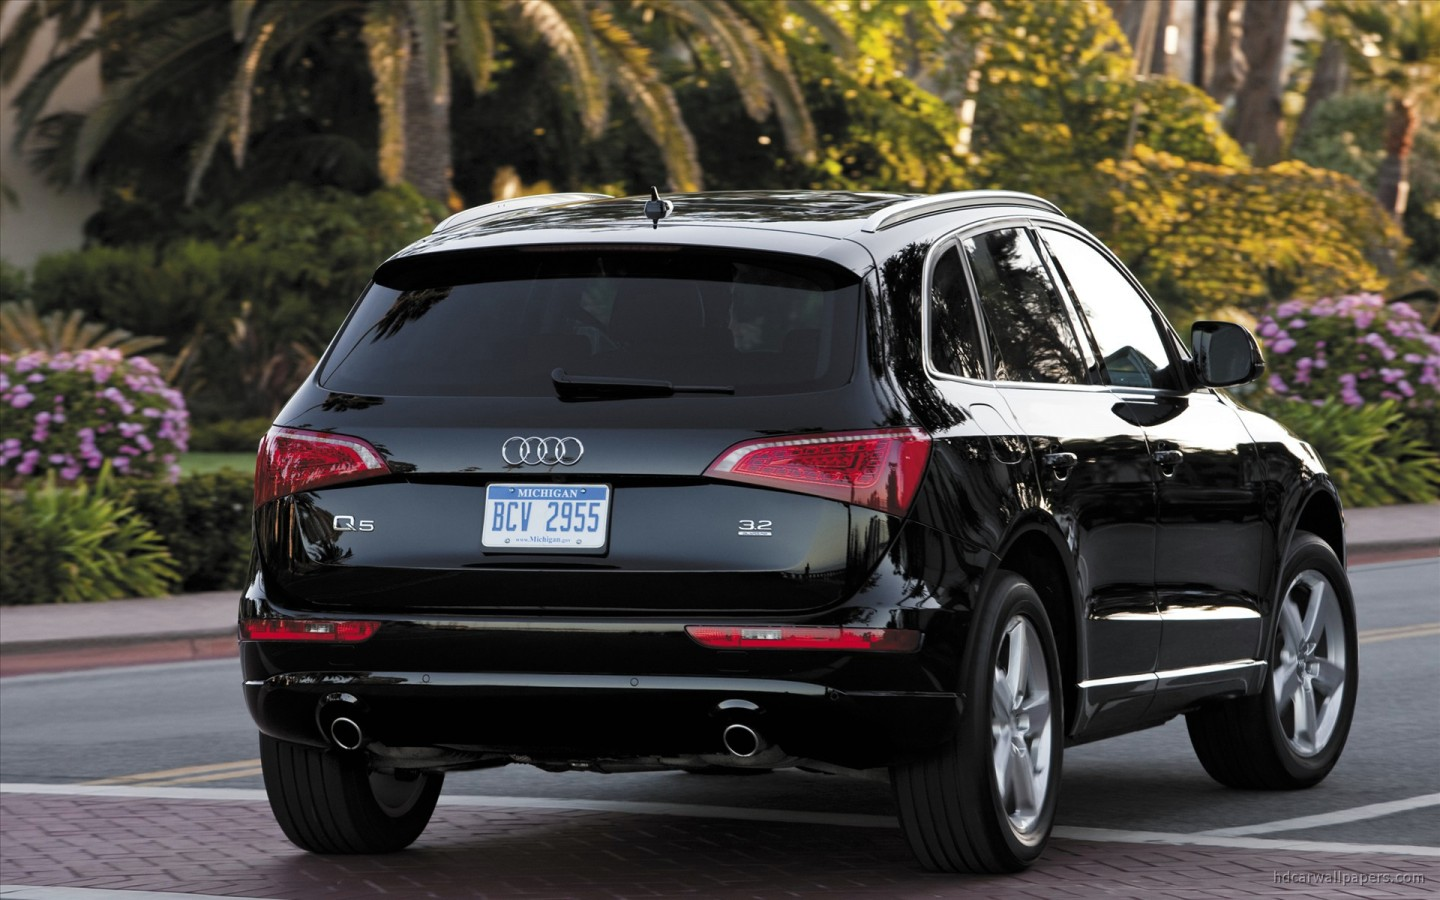 2010 audi q5 wallpaper hd car wallpapers id 130. Black Bedroom Furniture Sets. Home Design Ideas